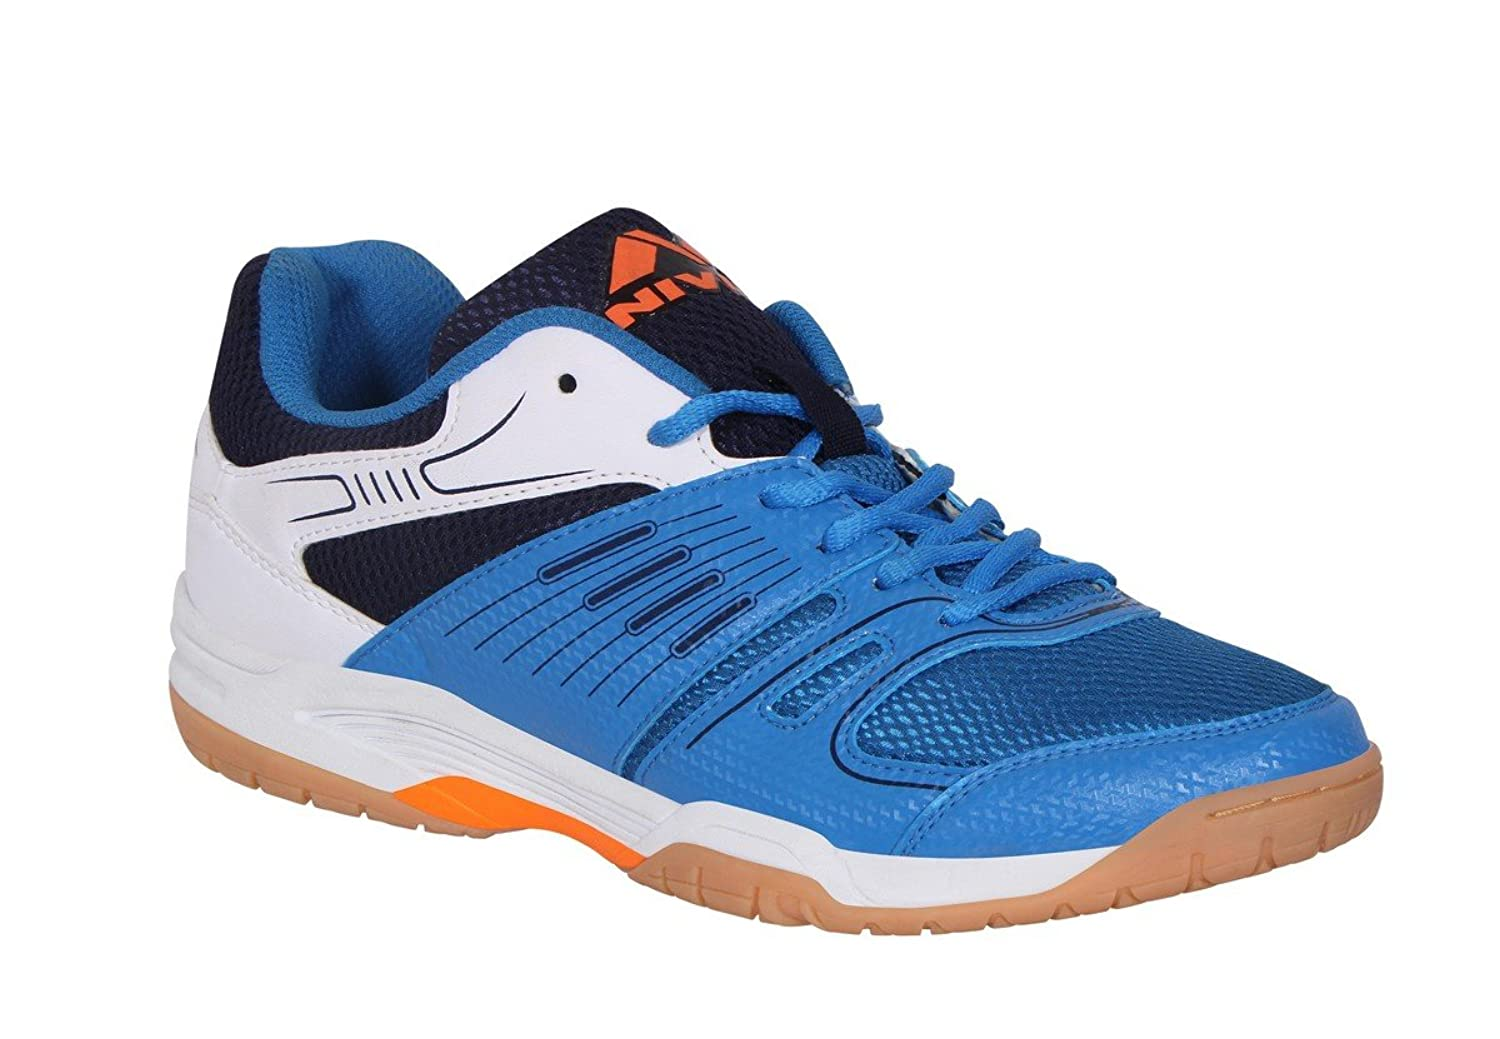 Badminton Shoes for Men  Buy Badminton Shoes for Men Online at Best ... a08ed6409